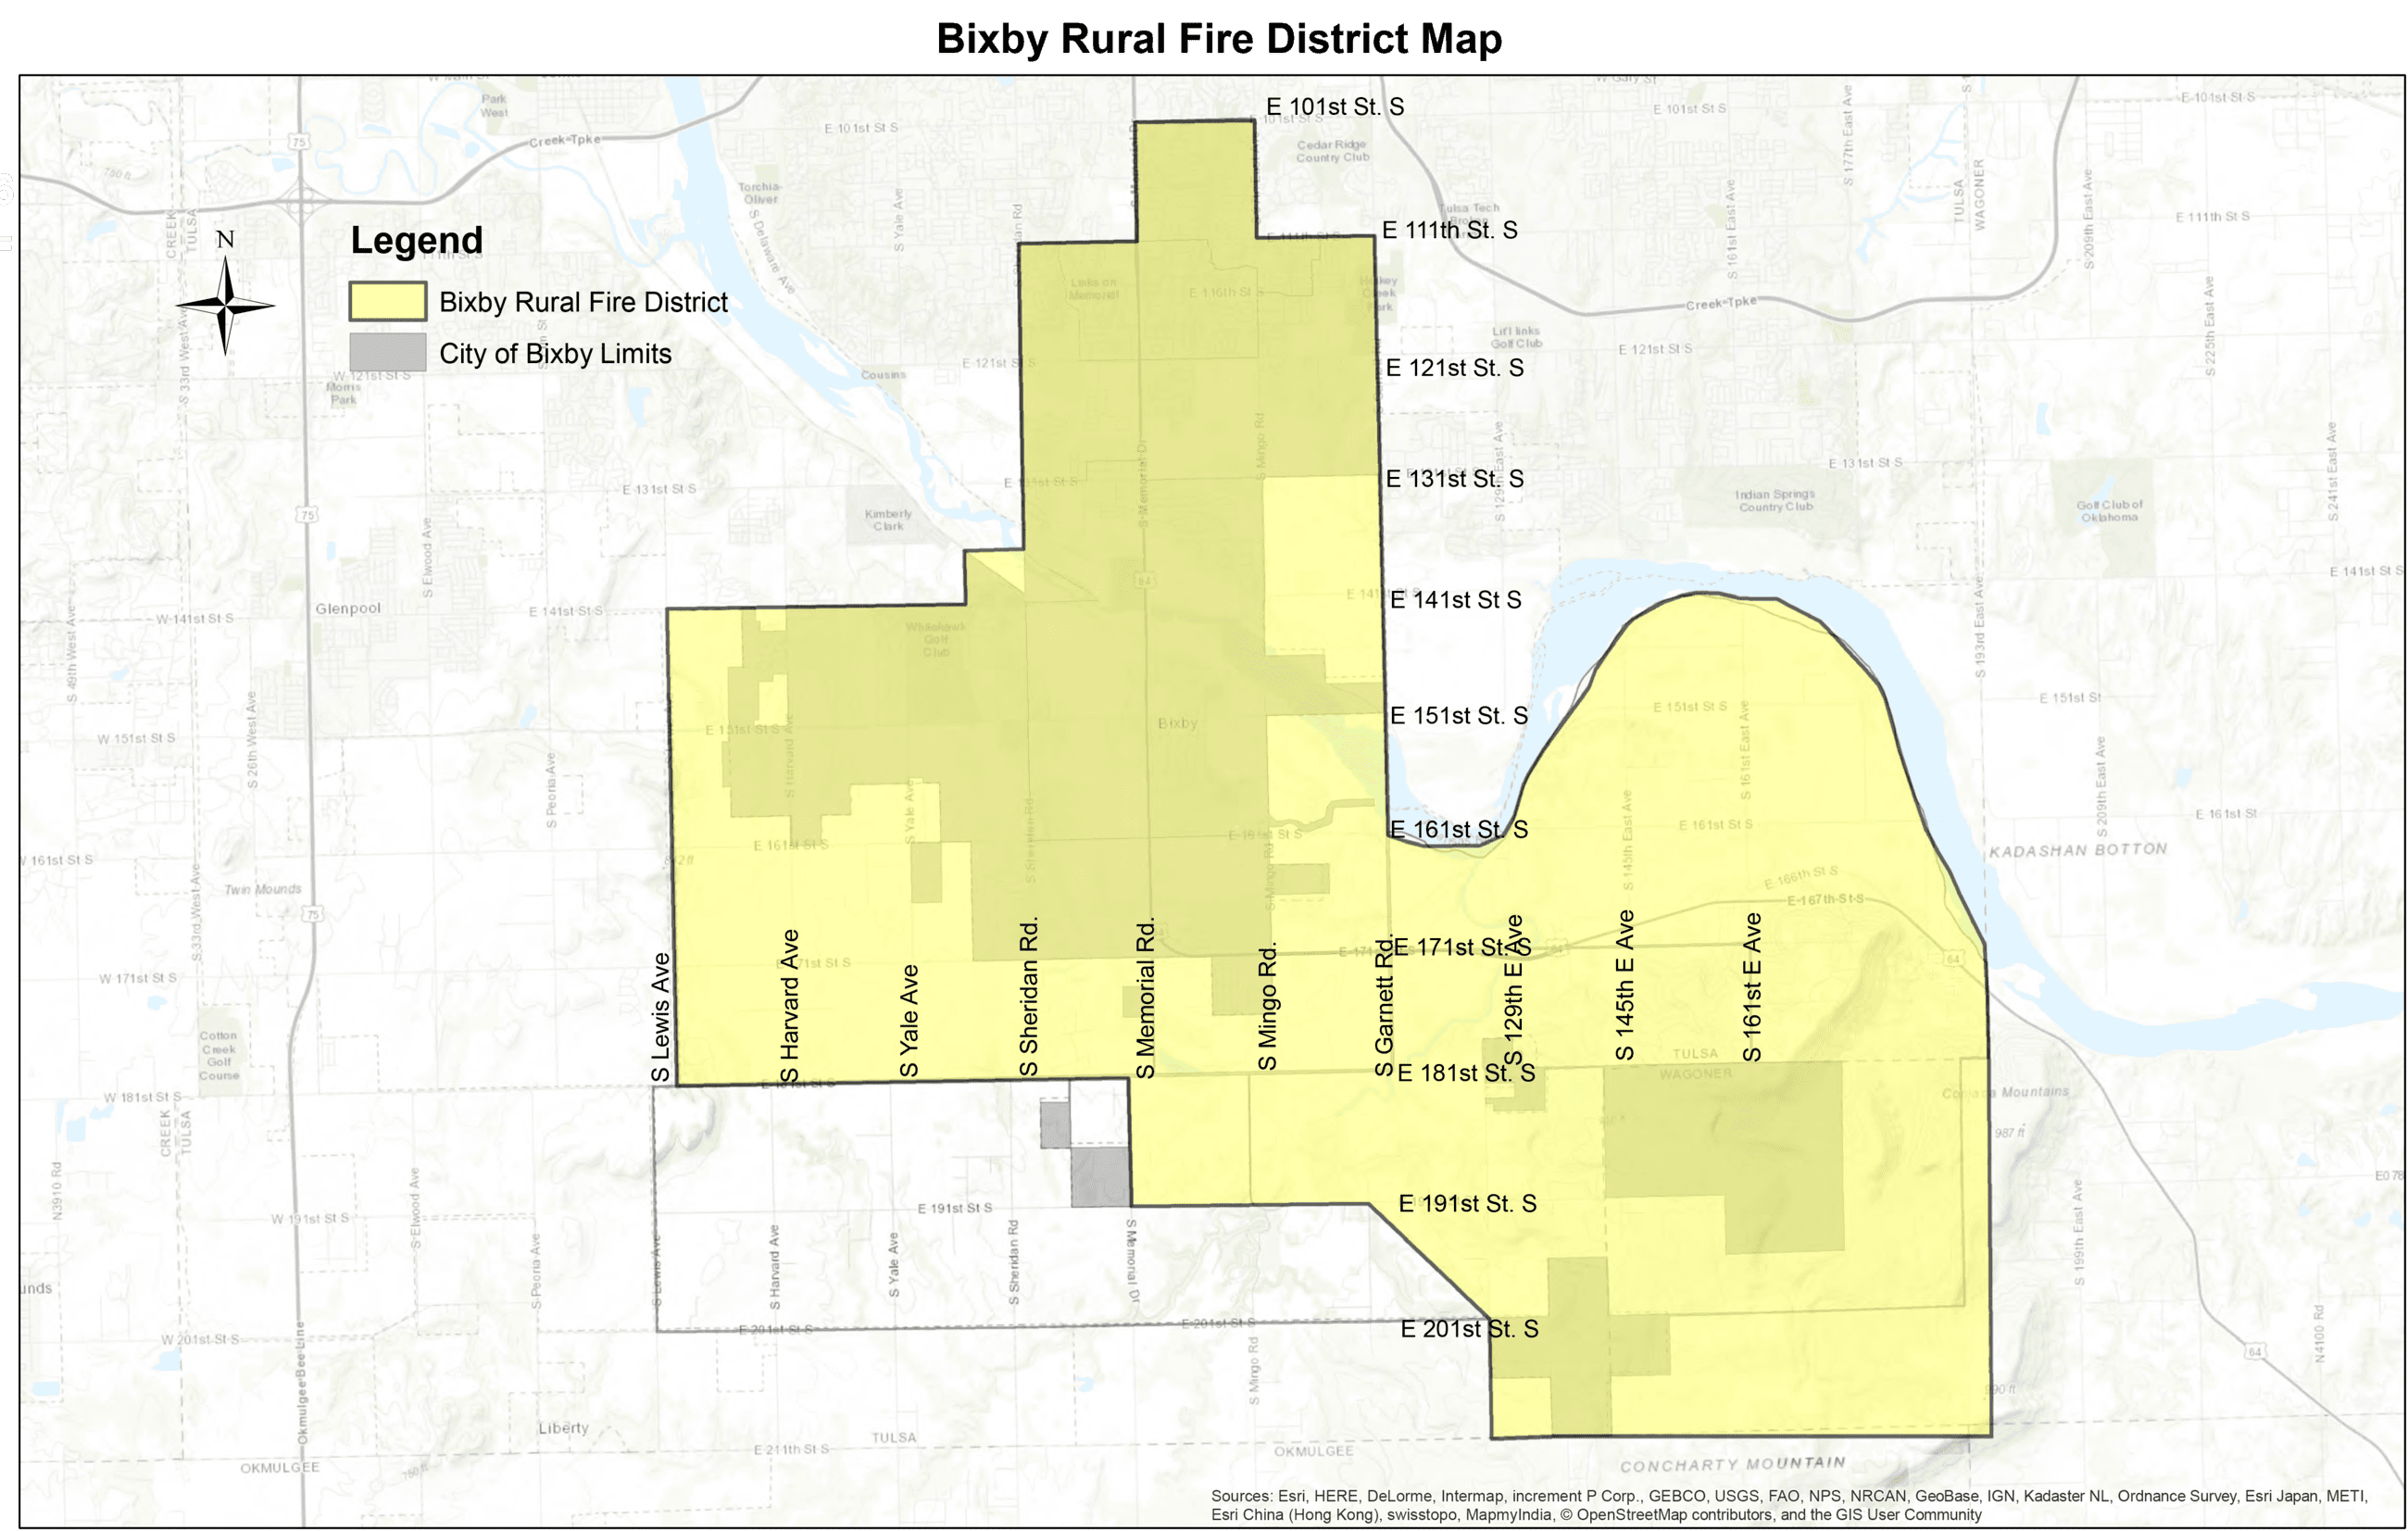 Bixby Rural Fire District map